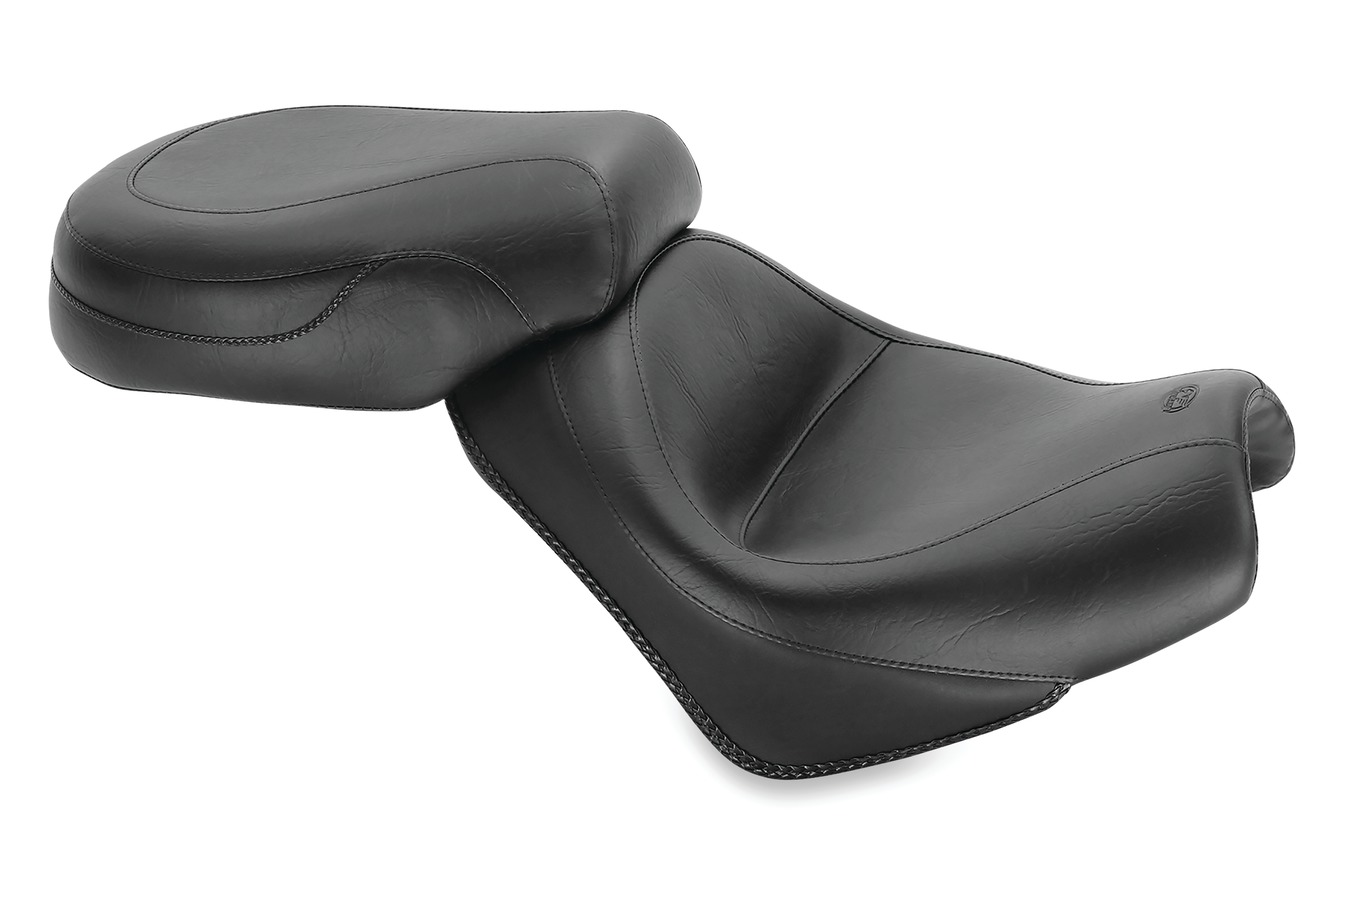 Wide Touring Two-Piece Seat for Honda VTX1800 Retro, S & T 2002-